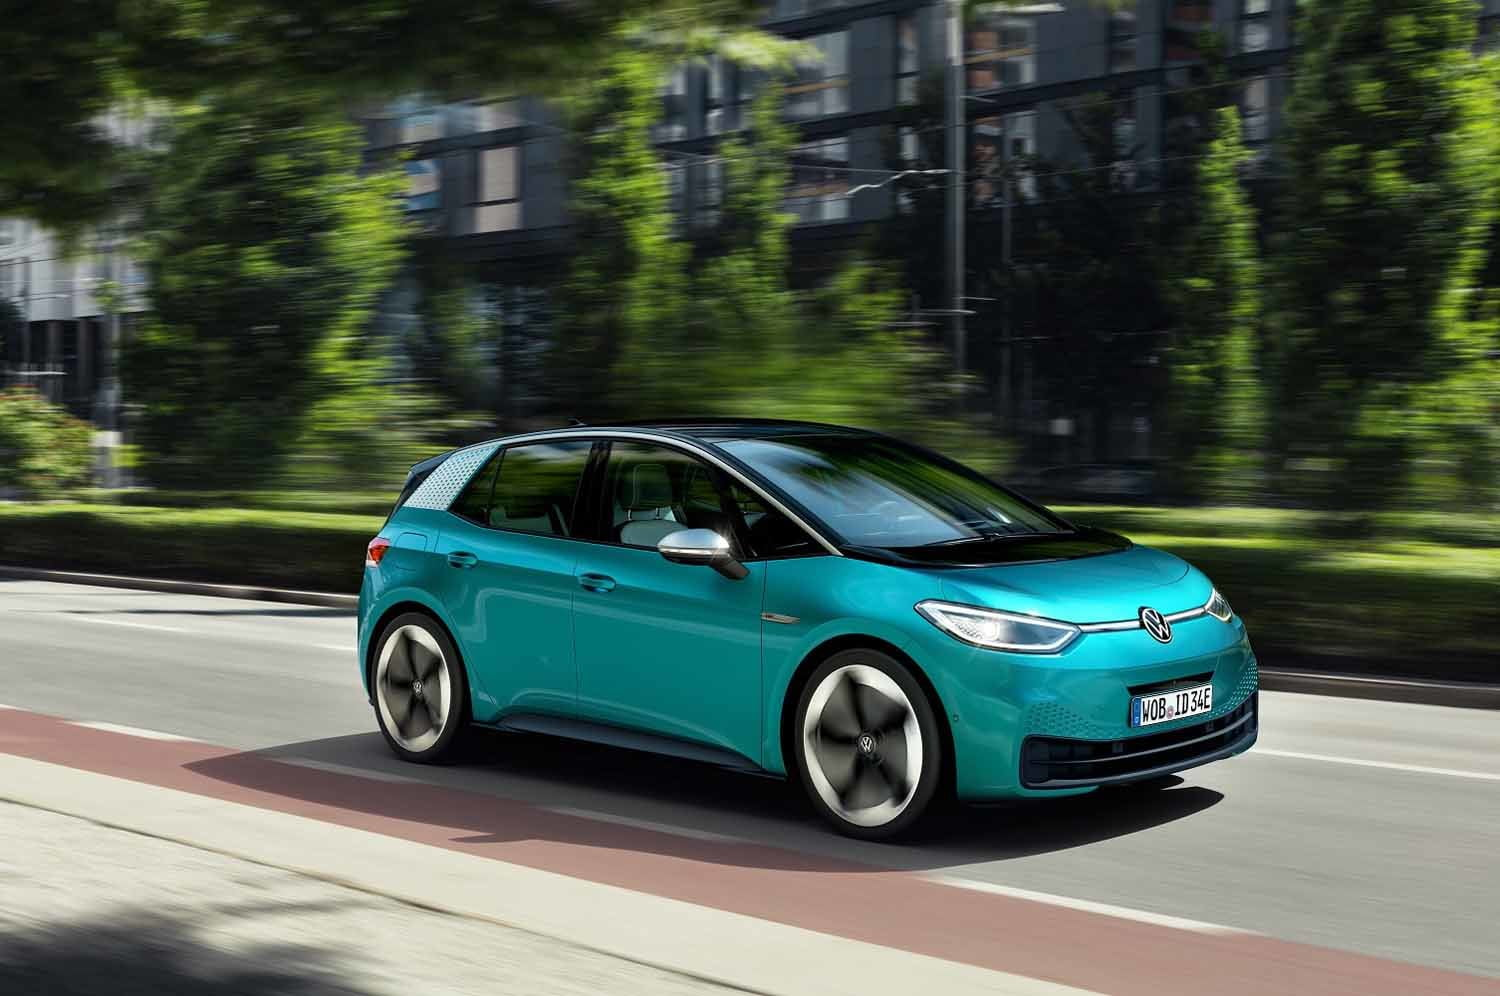 Volkswagen CEO says ID.3 will be 40% cheaper to make than the e-Golf